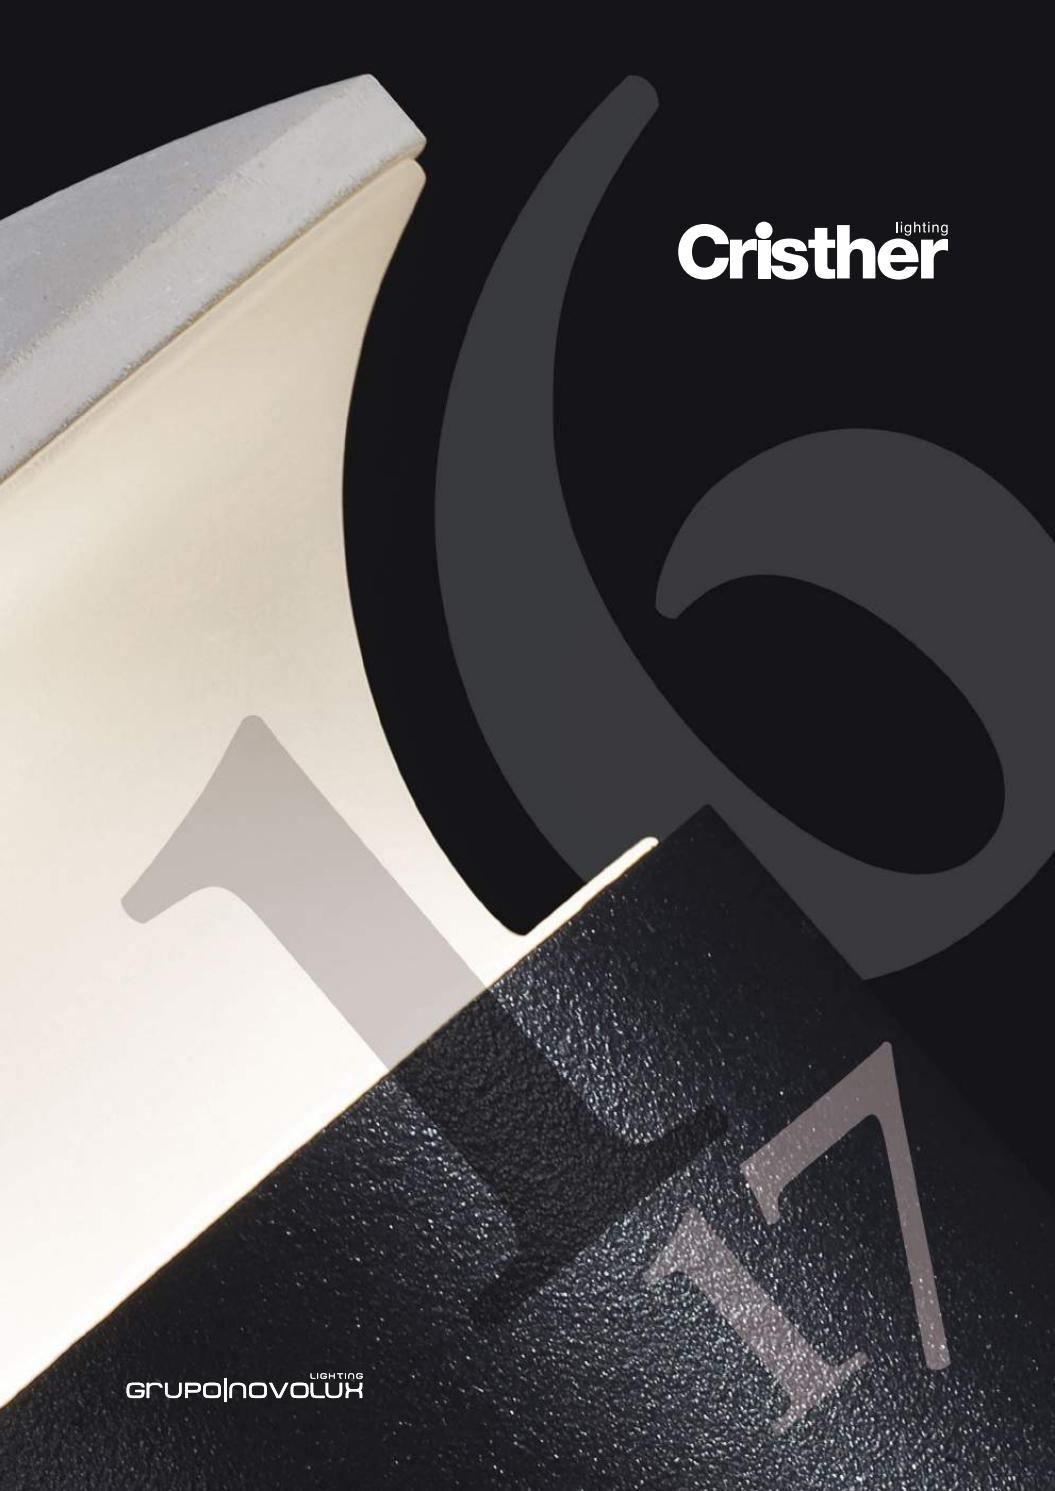 Cristher Geral By Henrique Soares Issuu